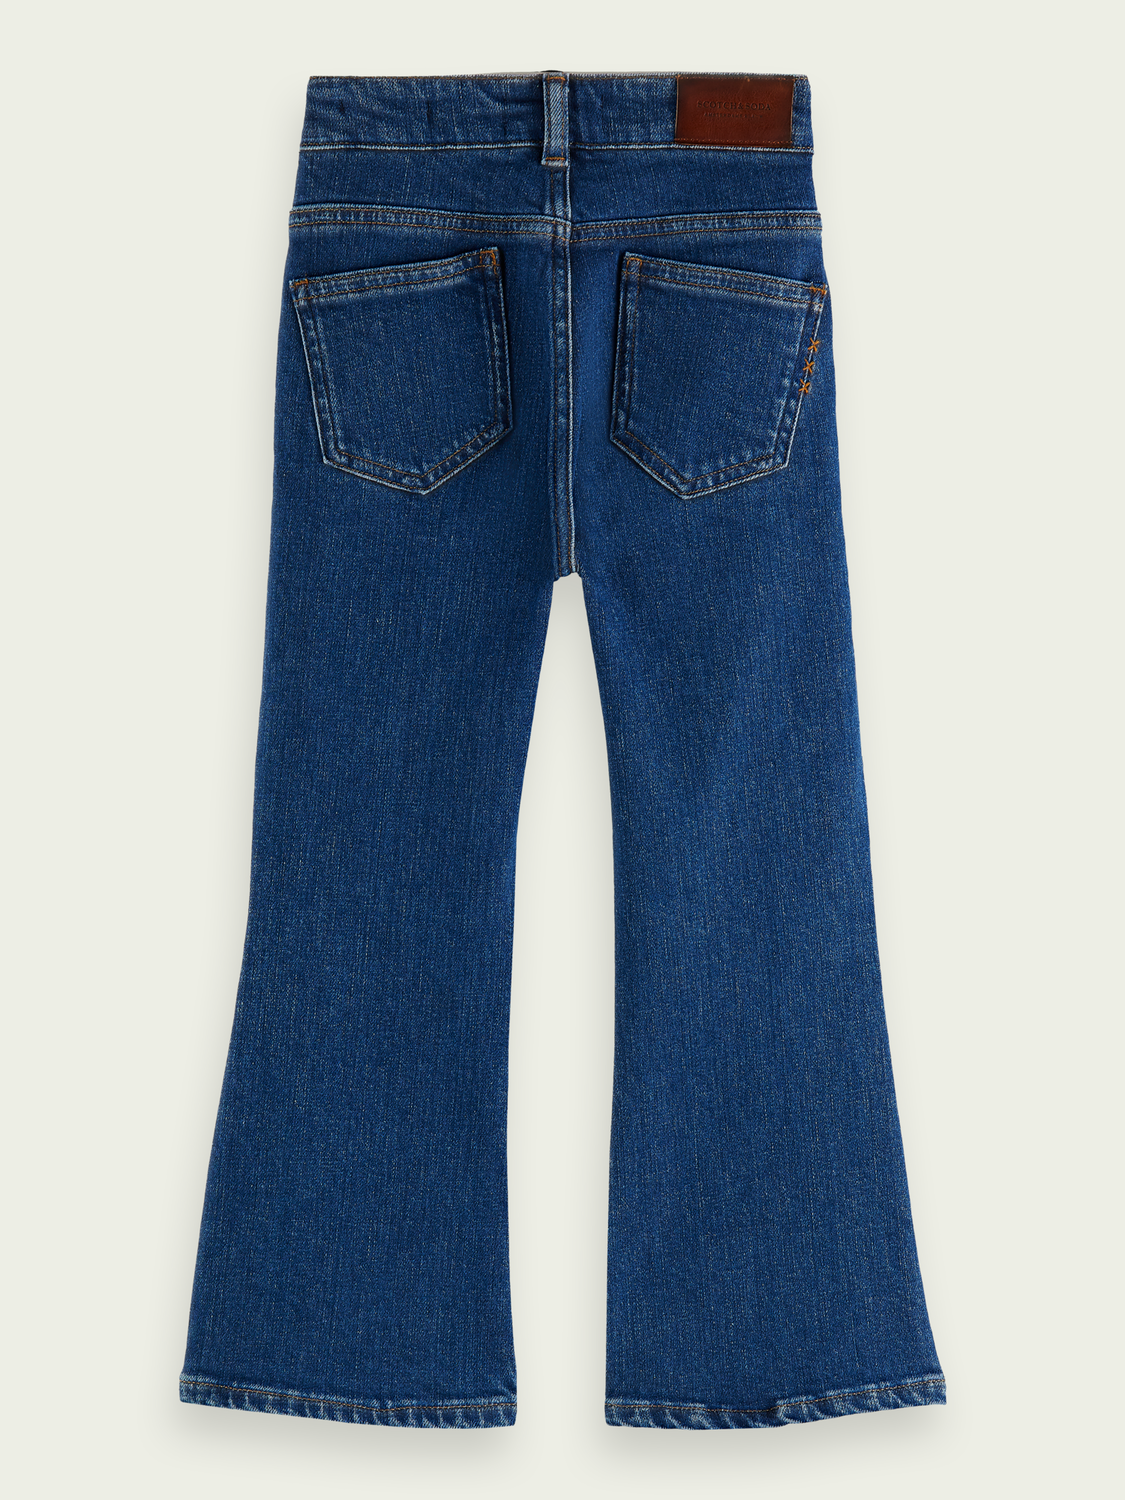 Kids The Kick high-rise flared jeans ─ Etched In Blue